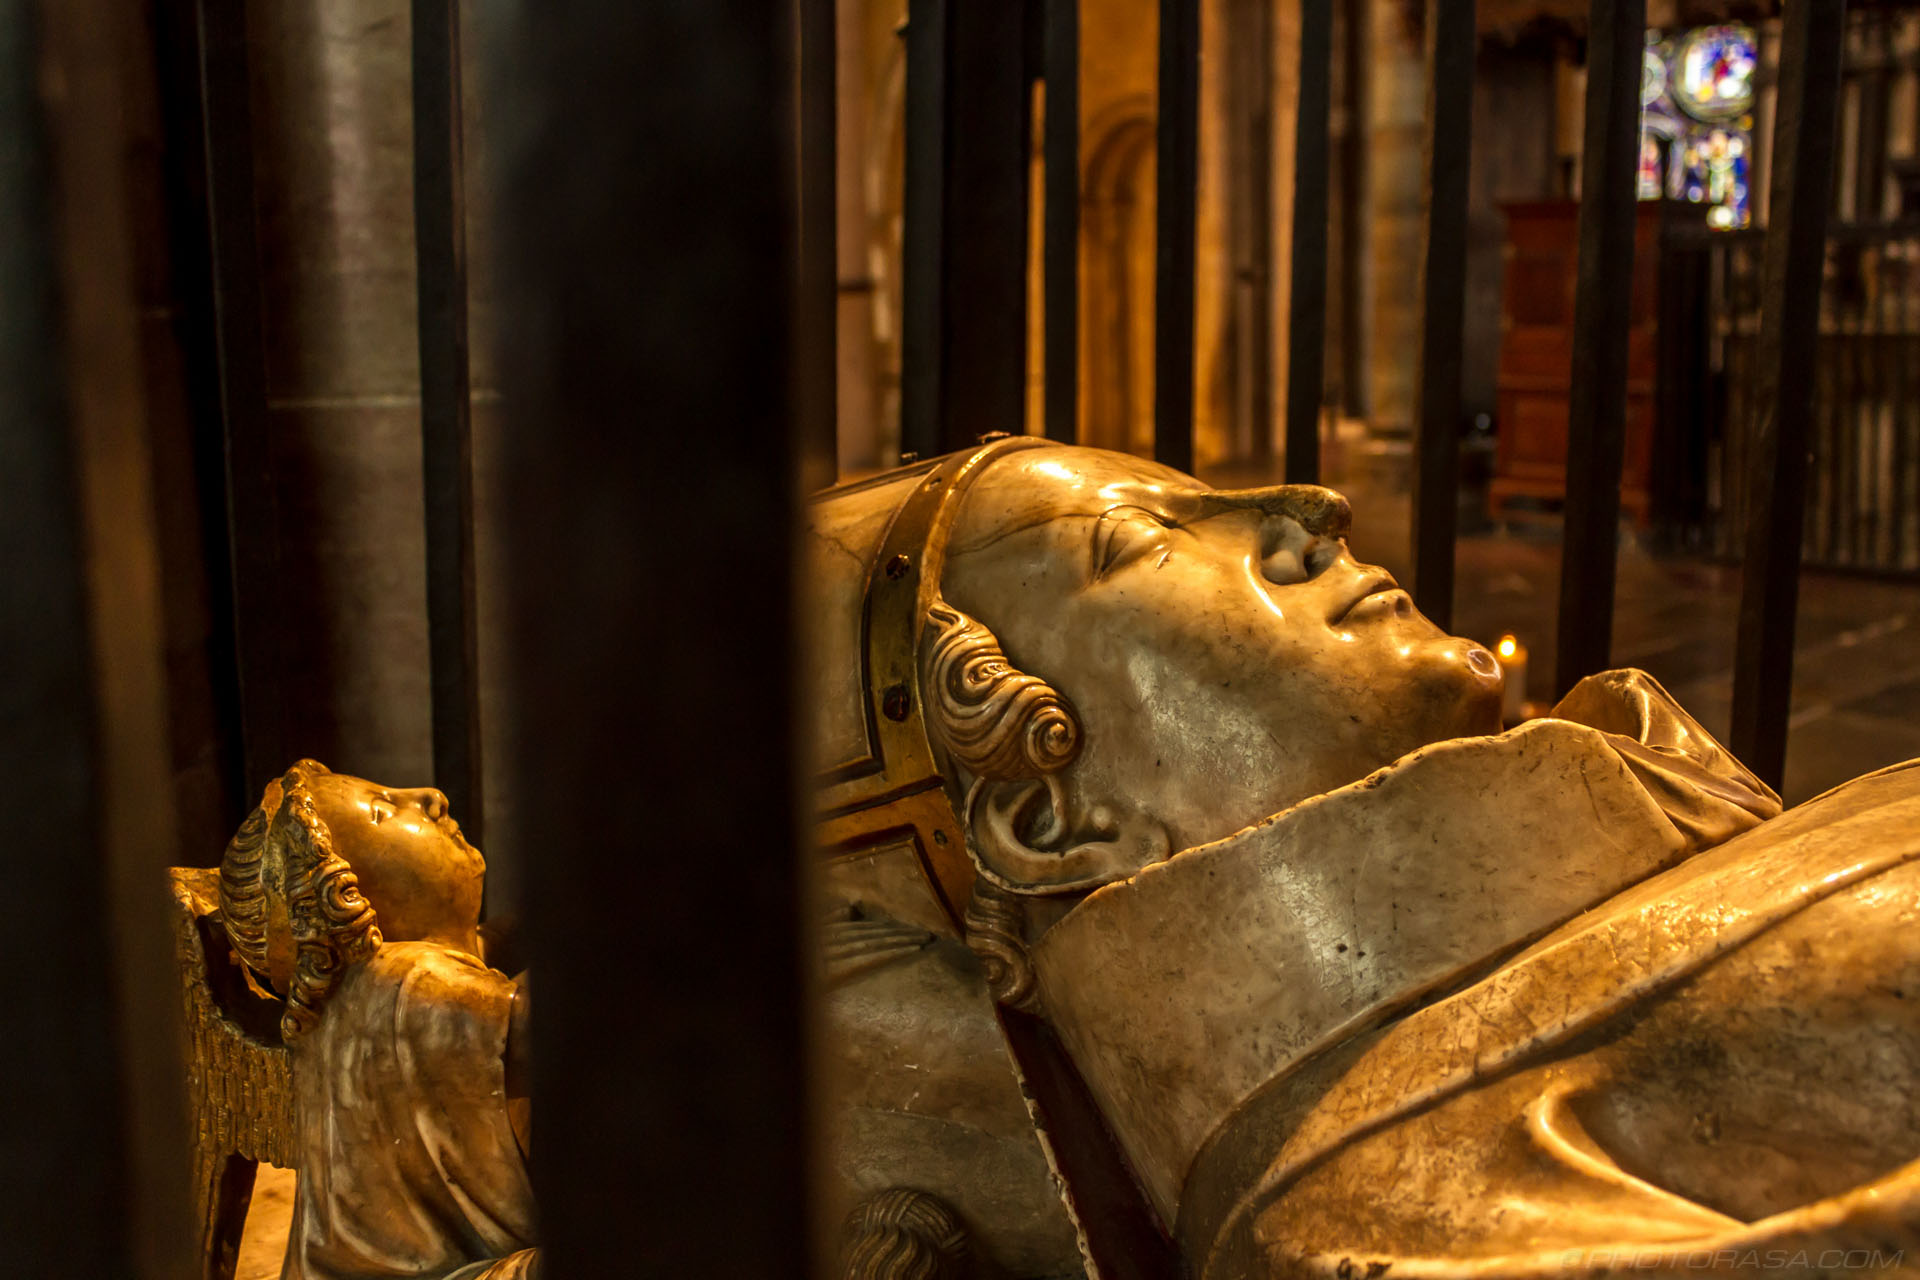 http://photorasa.com/canterbury-cathedral/tomb-of-archbishop-william-courtenay/